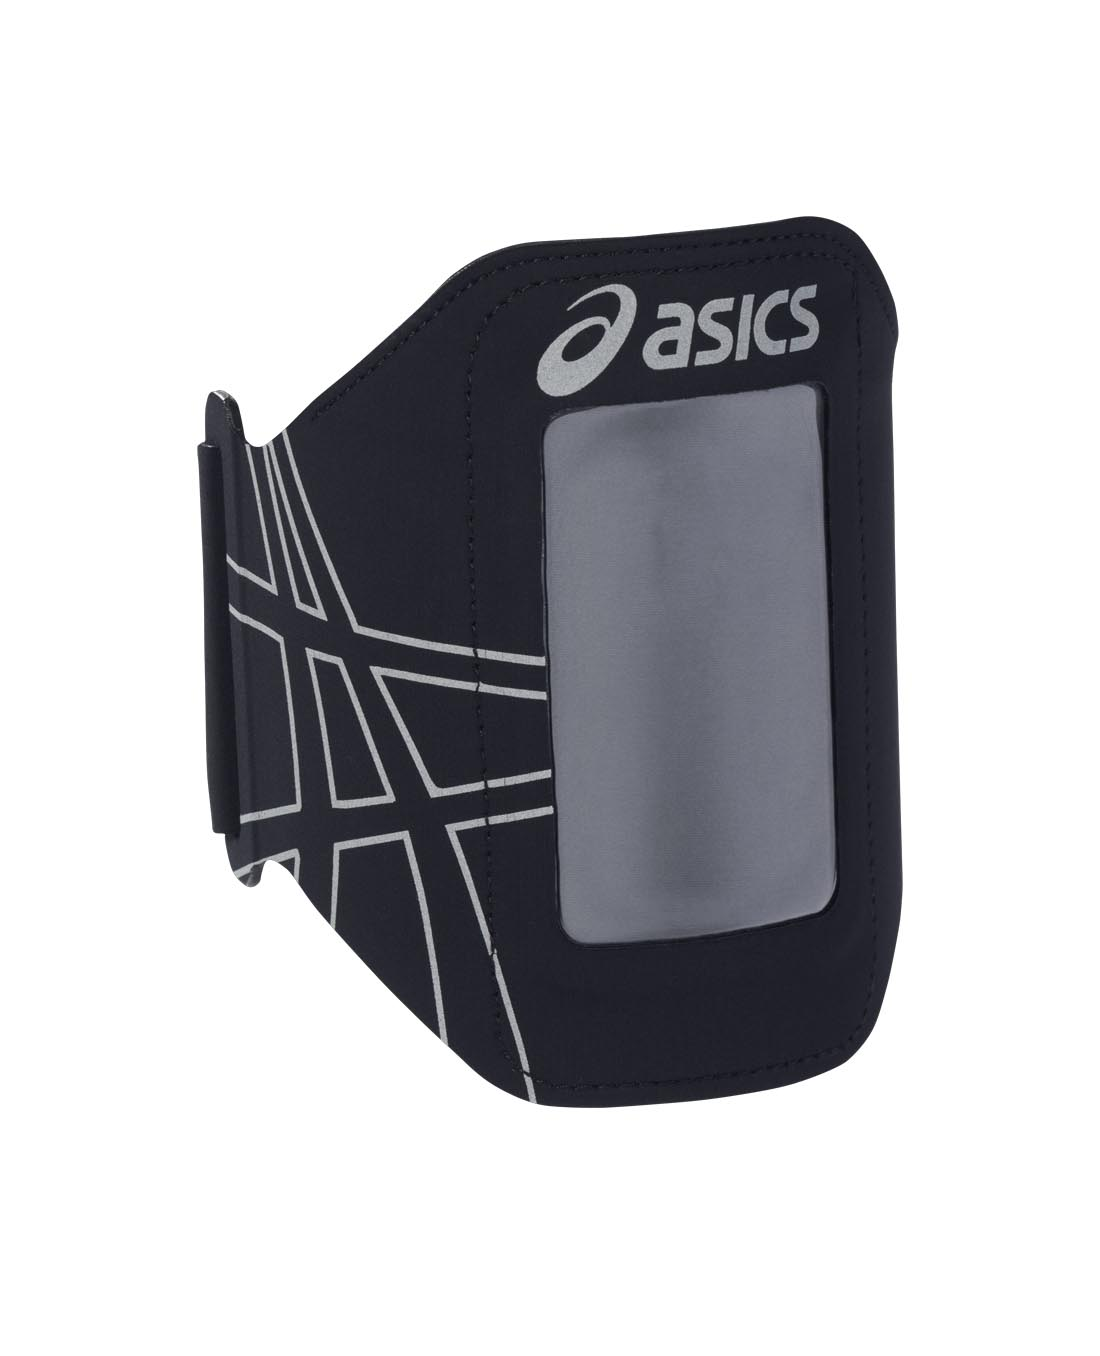 ASICS BRAZALETE ASICS MP3 POCKET